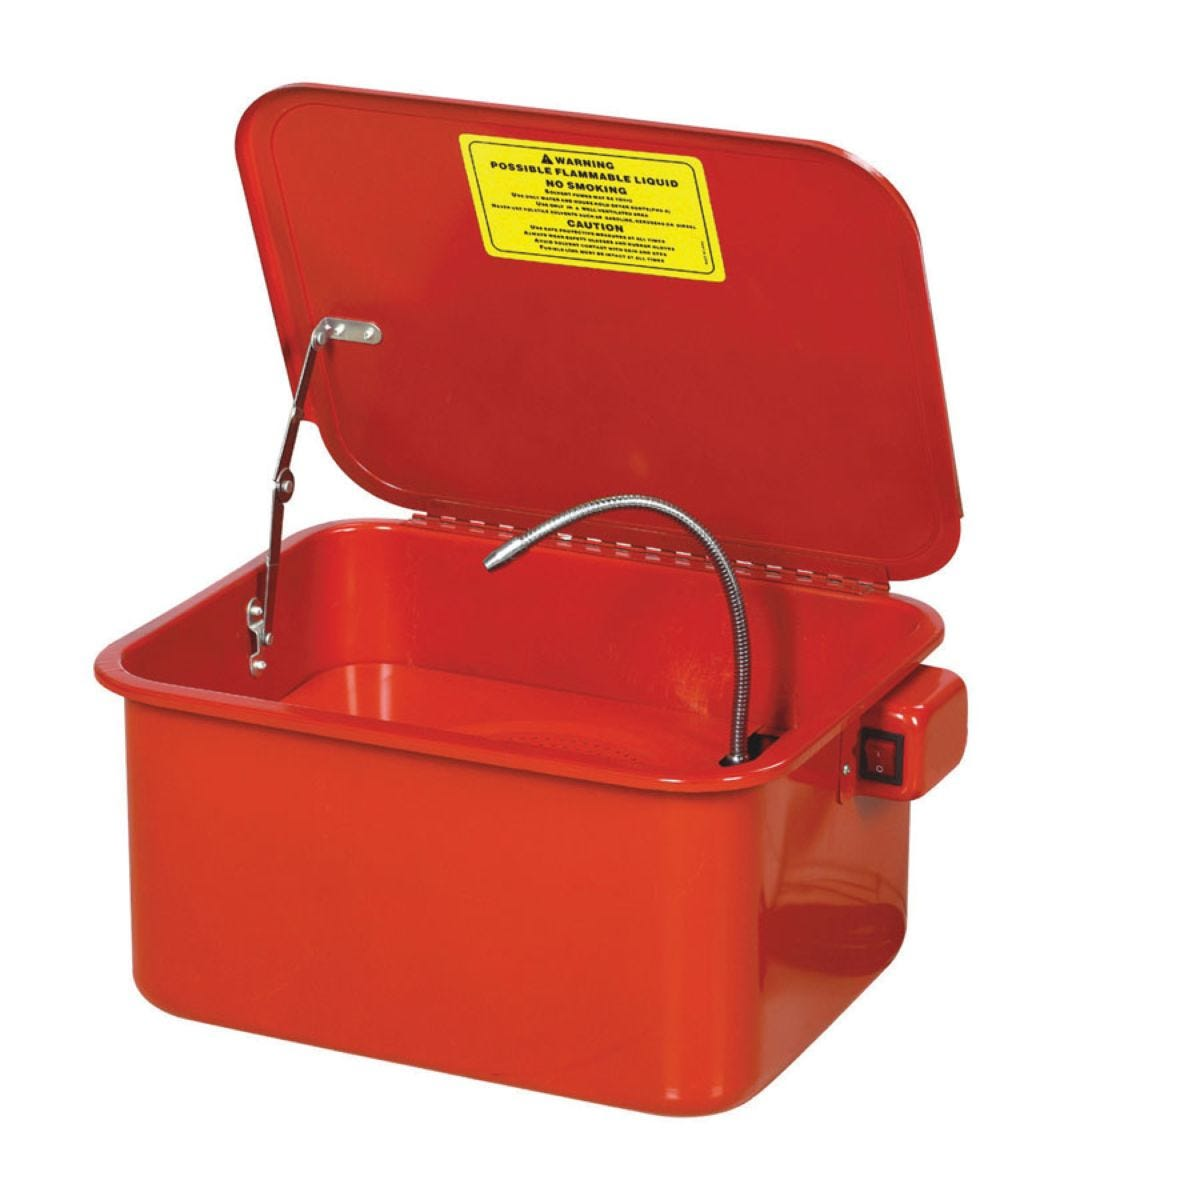 Hilka Bench Parts Washer